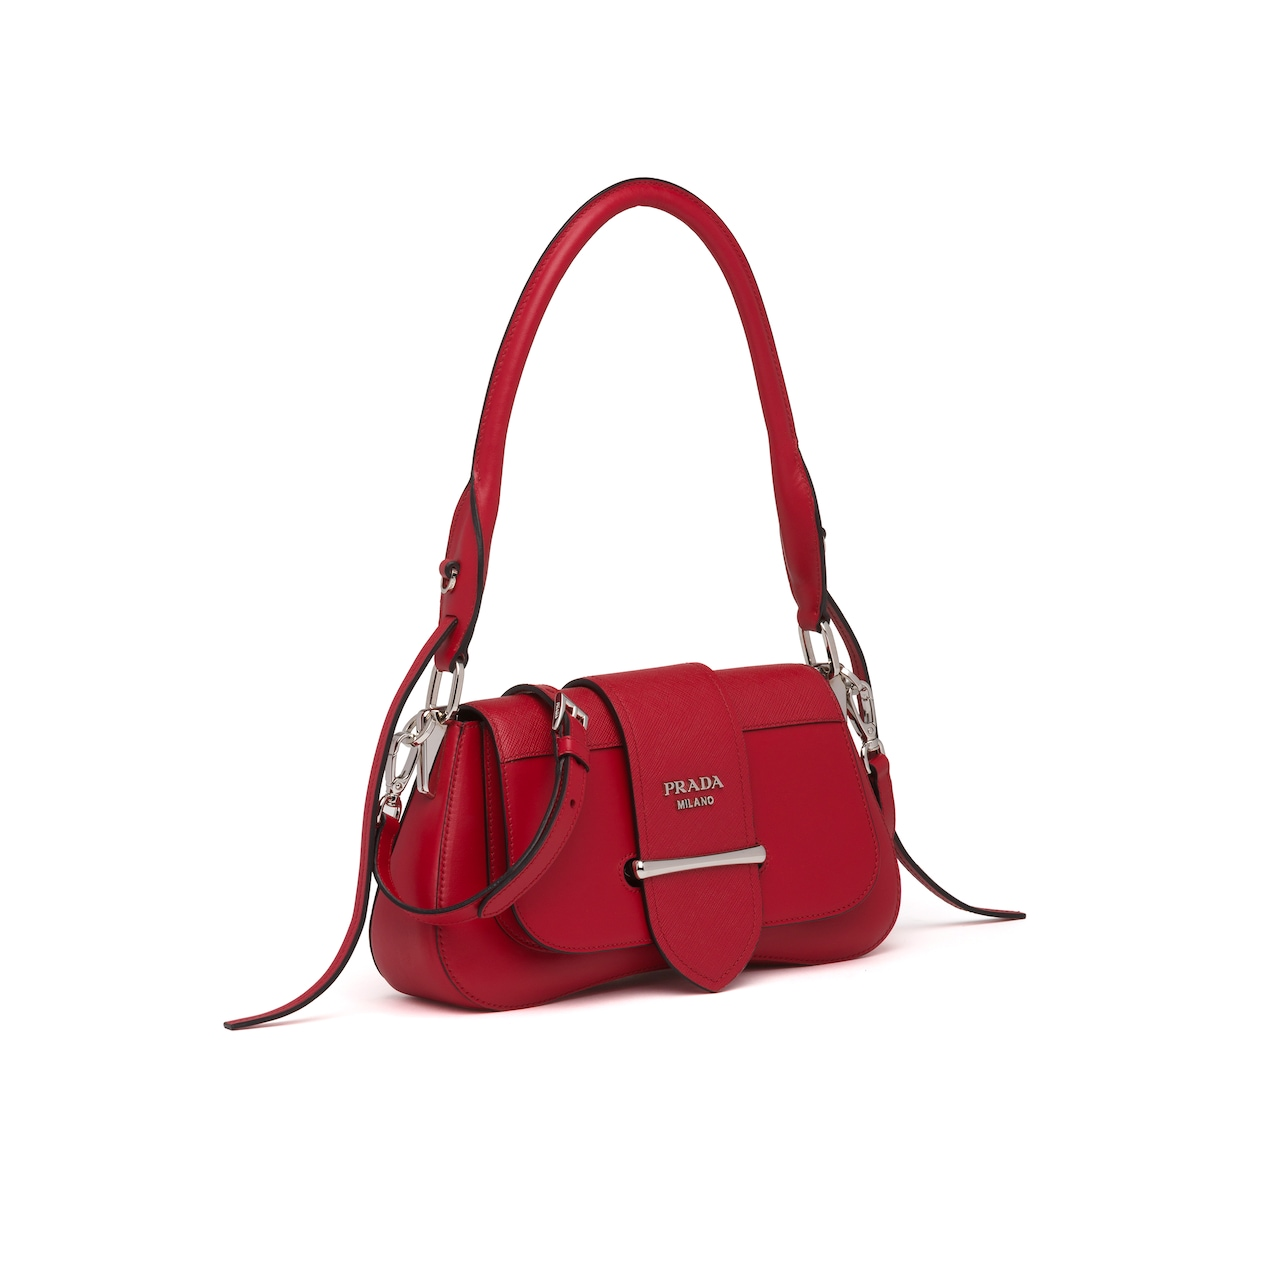 Prada Prada Sidonie shoulder bag 3